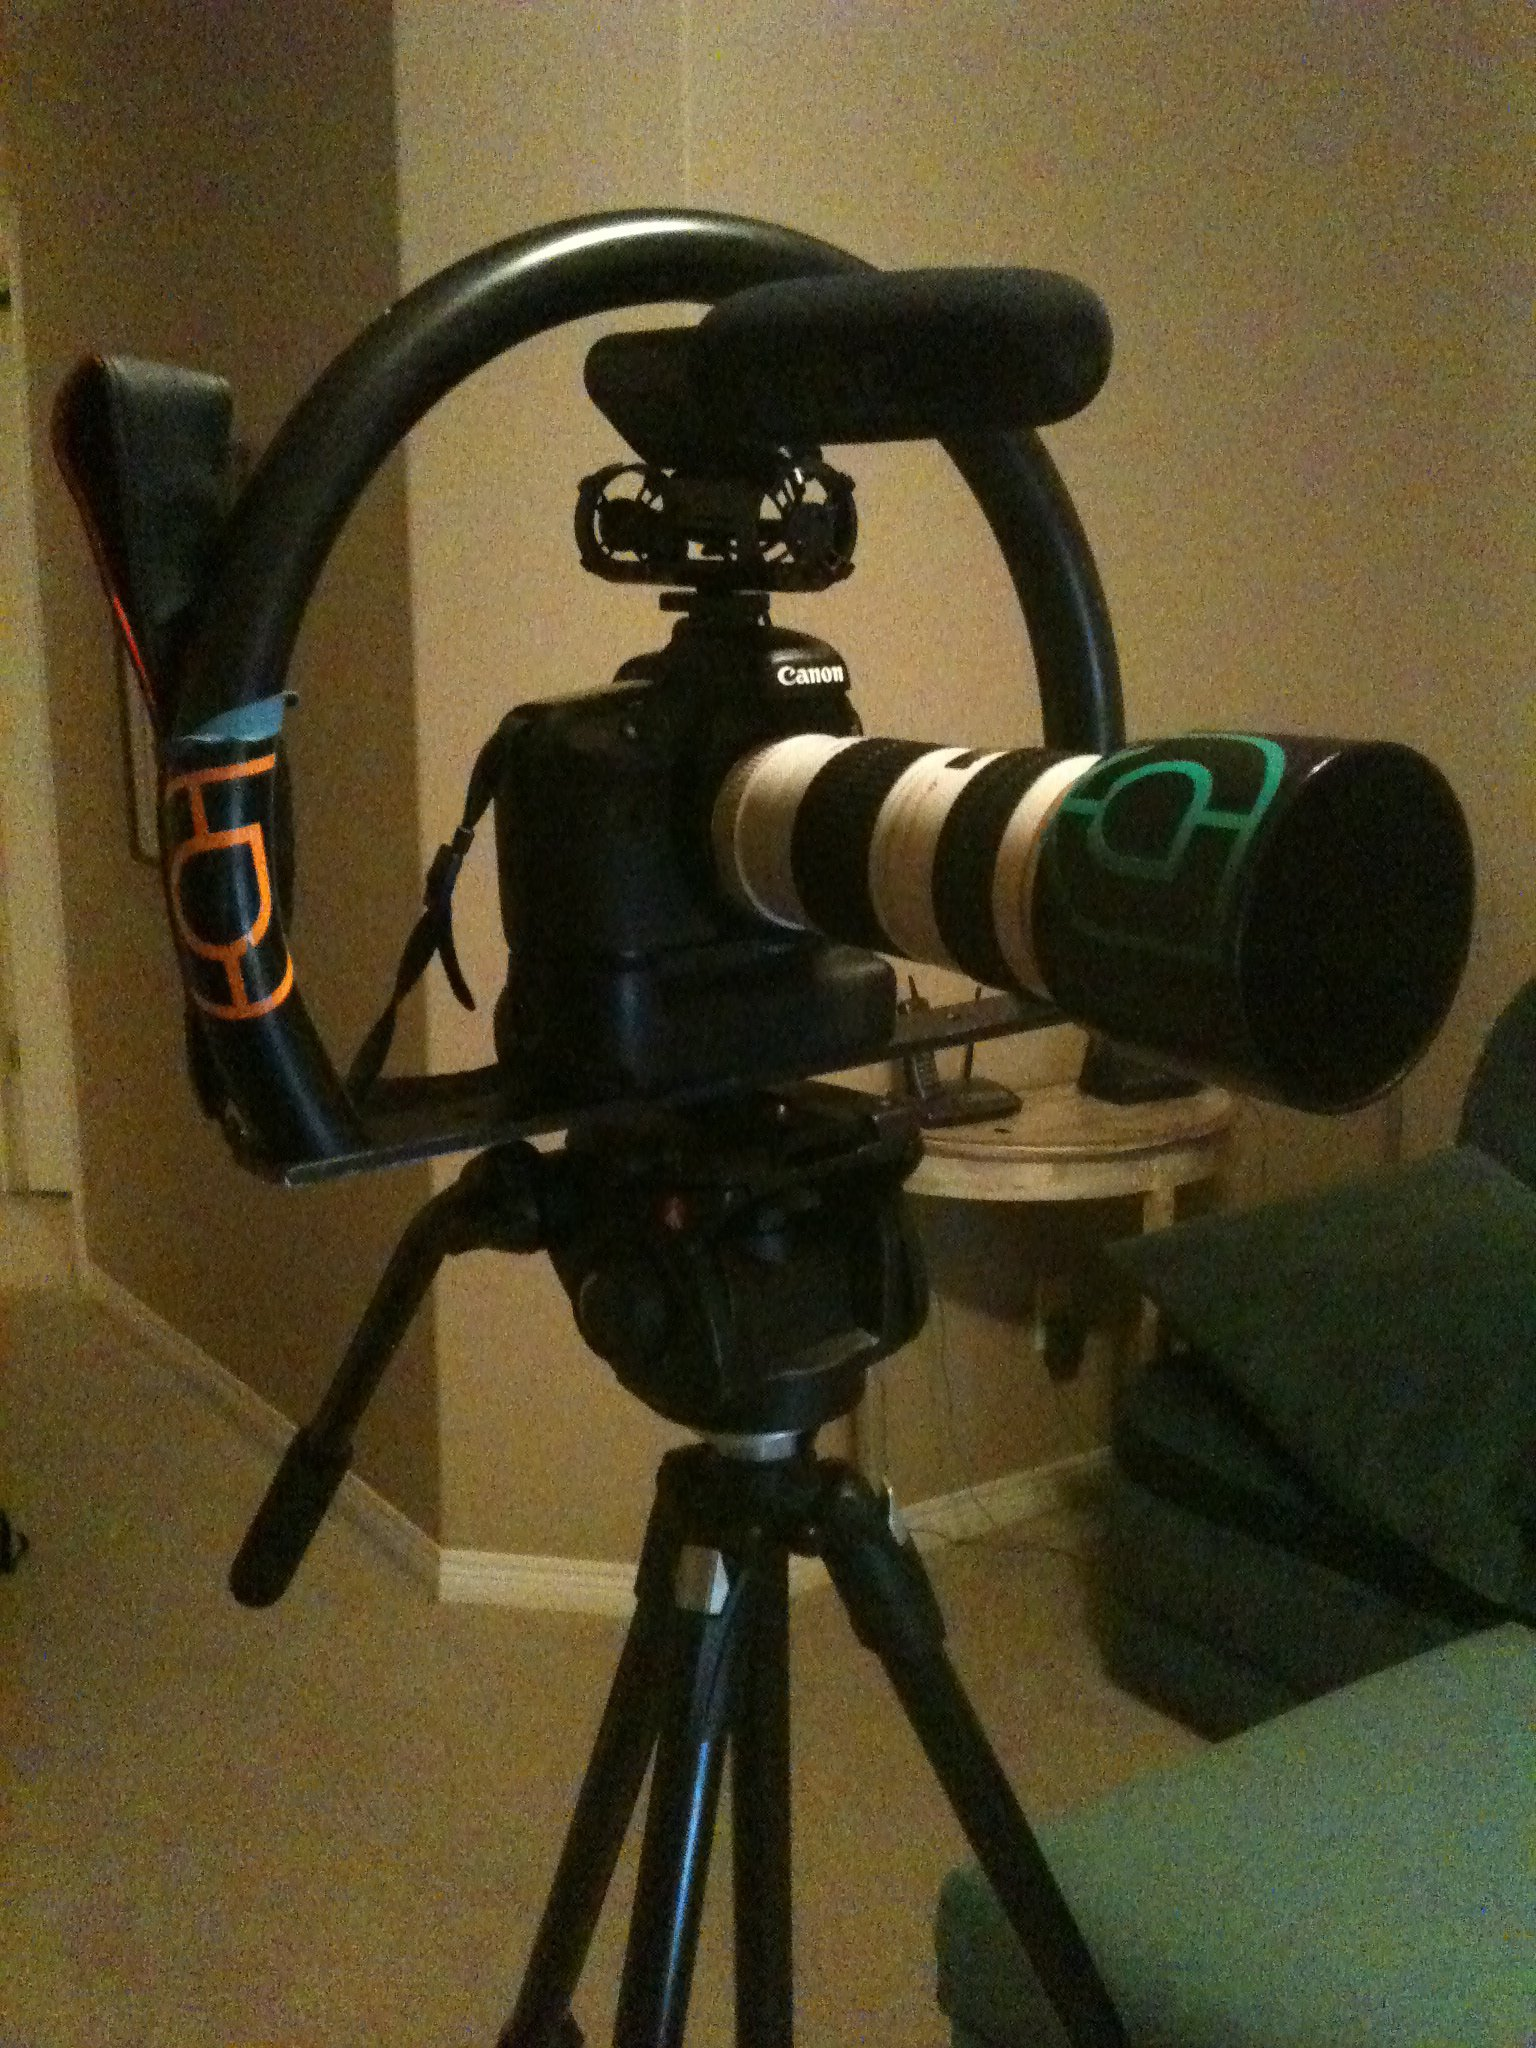 Cam rig for thread